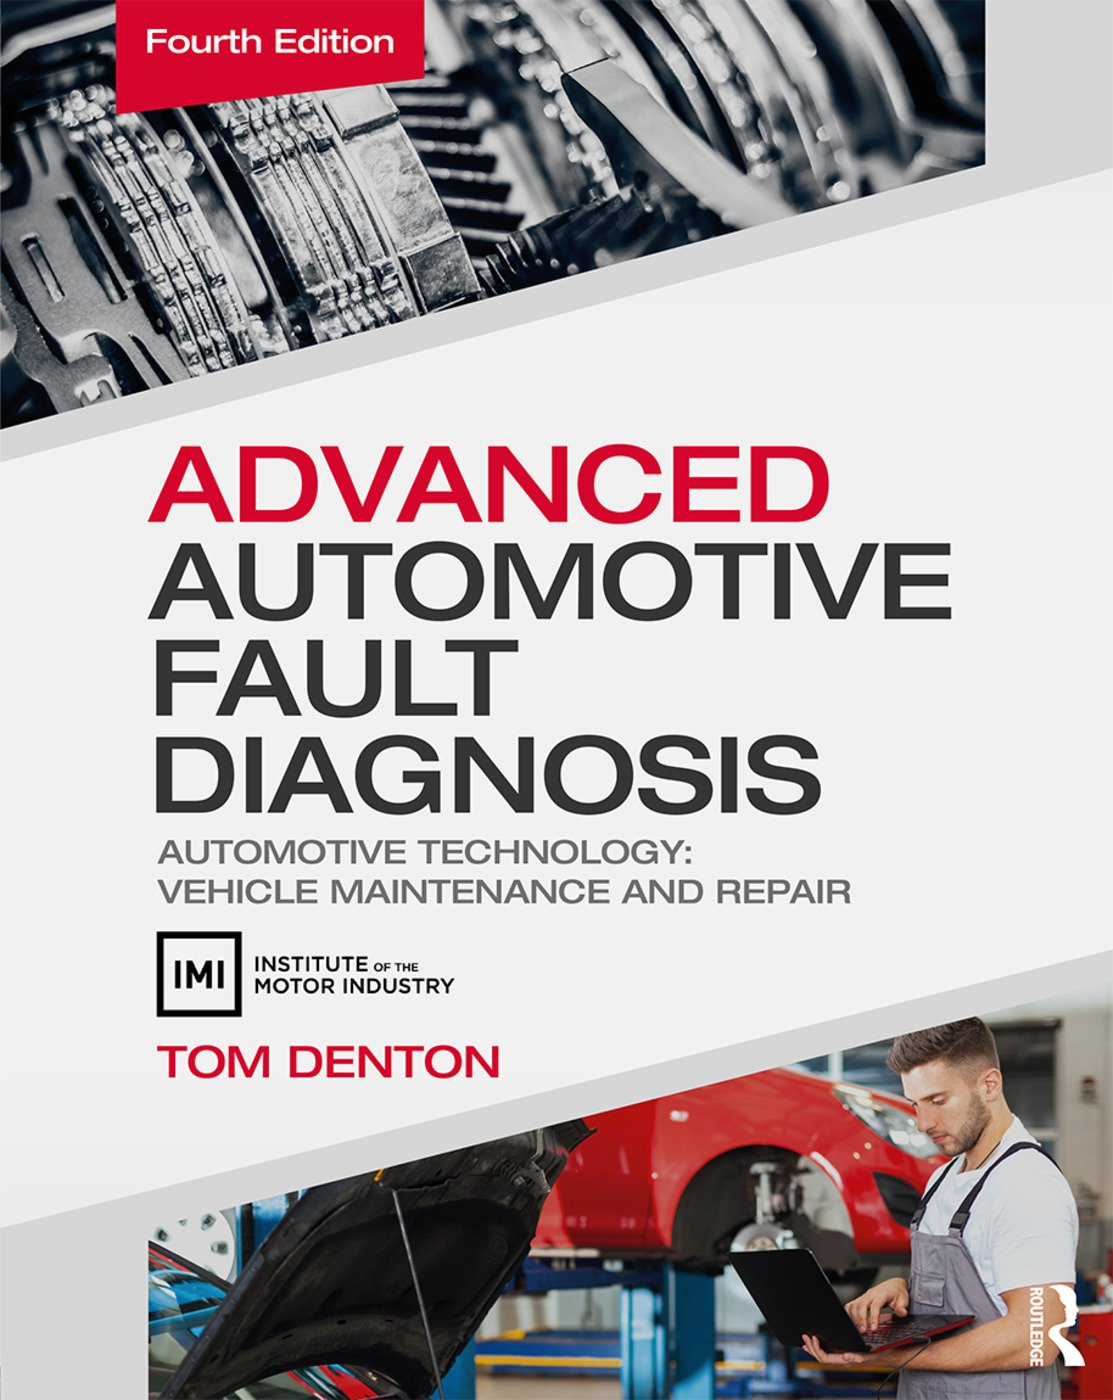 Advanced Automotive Fault Diagnosis, 4th ed: Automotive Technology: Vehicle Maintenance and Repair, 4th Edition (Paperback) book cover